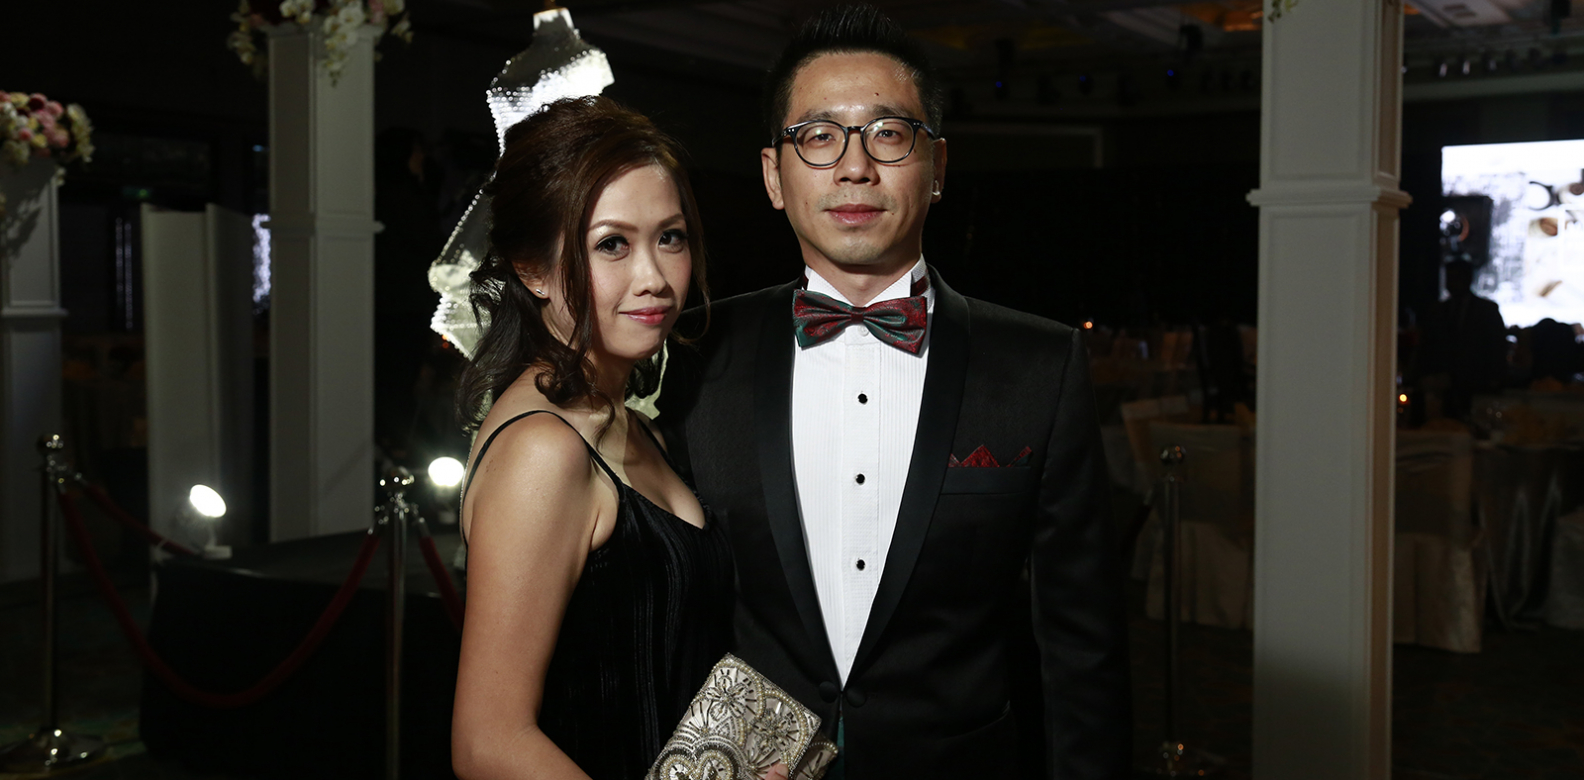 Caren Neoh and Melvin Chau